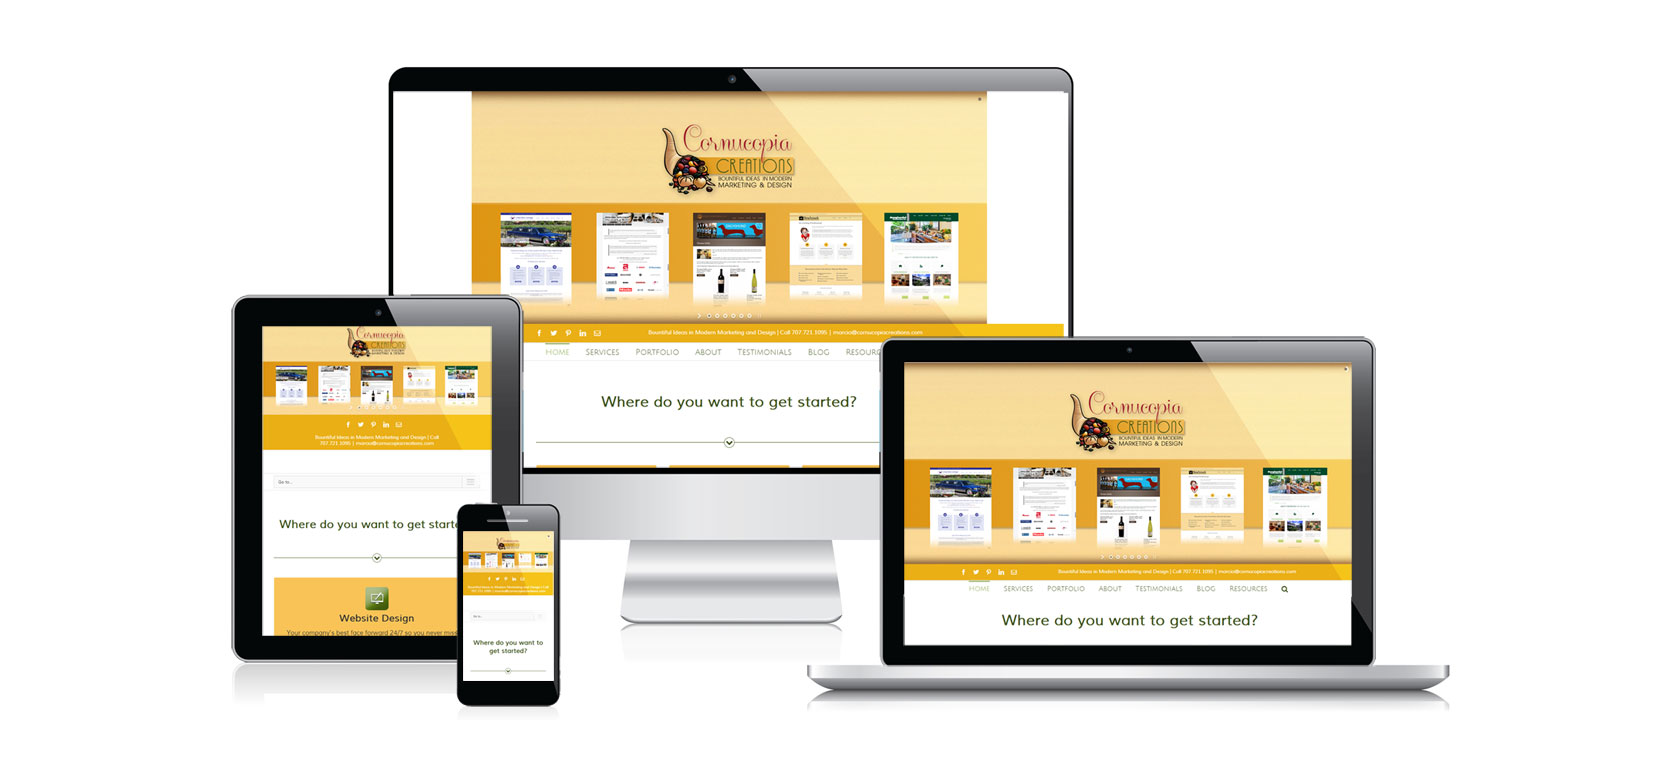 Website Design - Responsive - Desktop, Mobile, Tablet Design